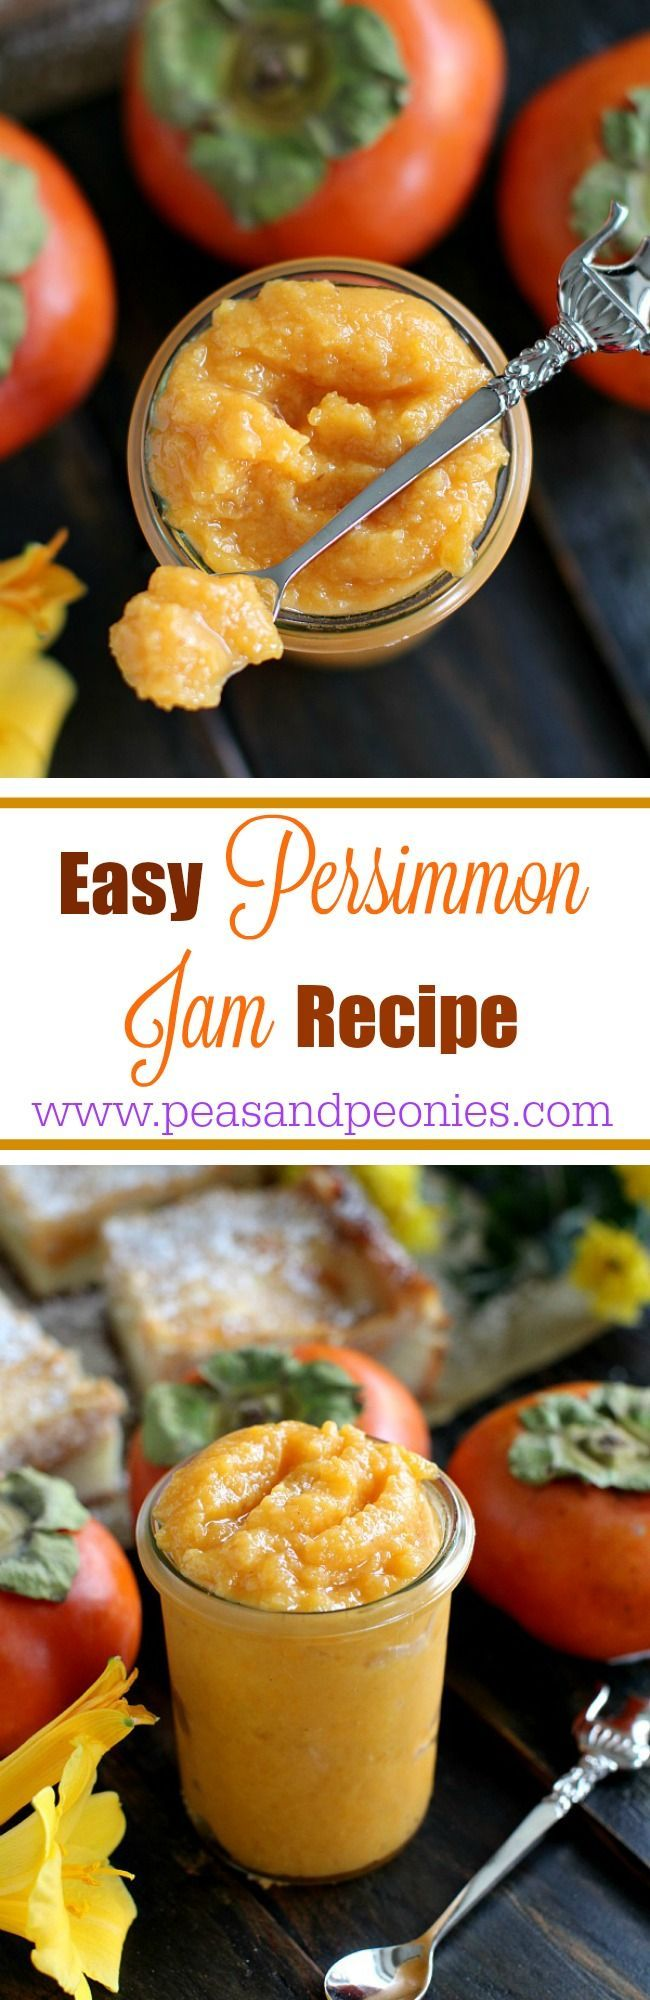 Easy Persimmon Jam Recipe